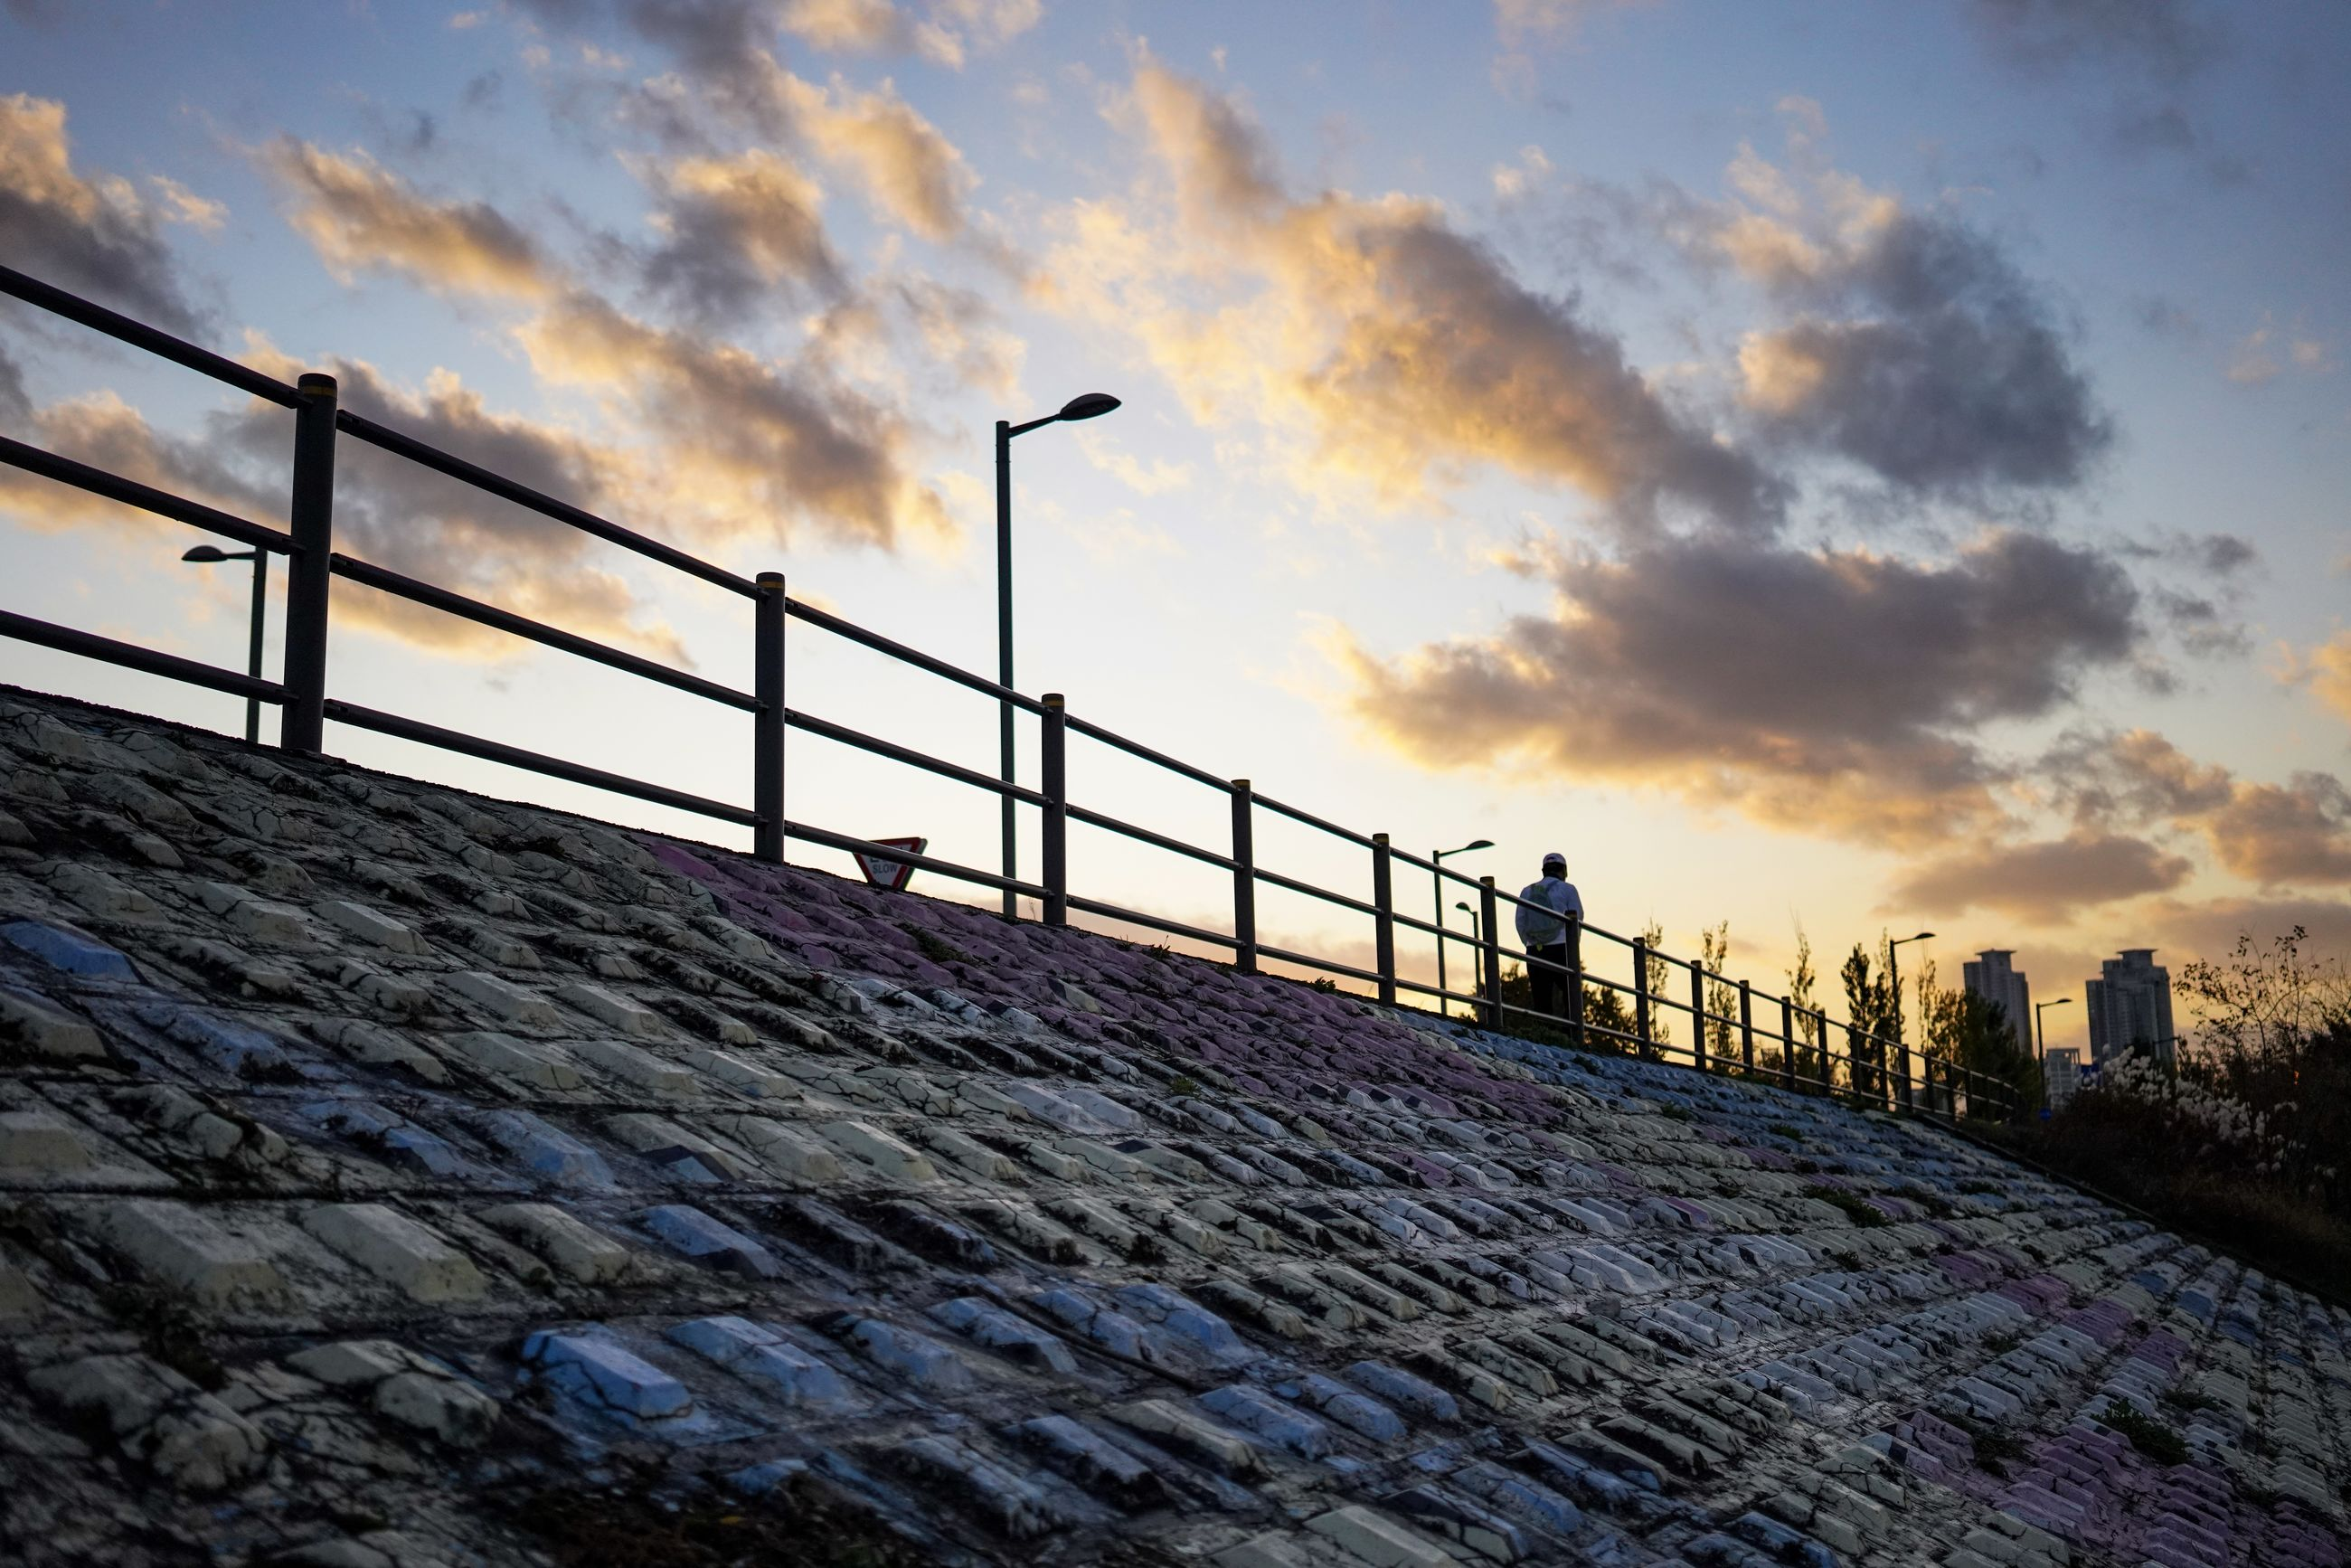 sky, cloud - sky, sunset, built structure, nature, architecture, real people, building exterior, leisure activity, lifestyles, wall, outdoors, standing, people, street, railing, men, city, scenics - nature